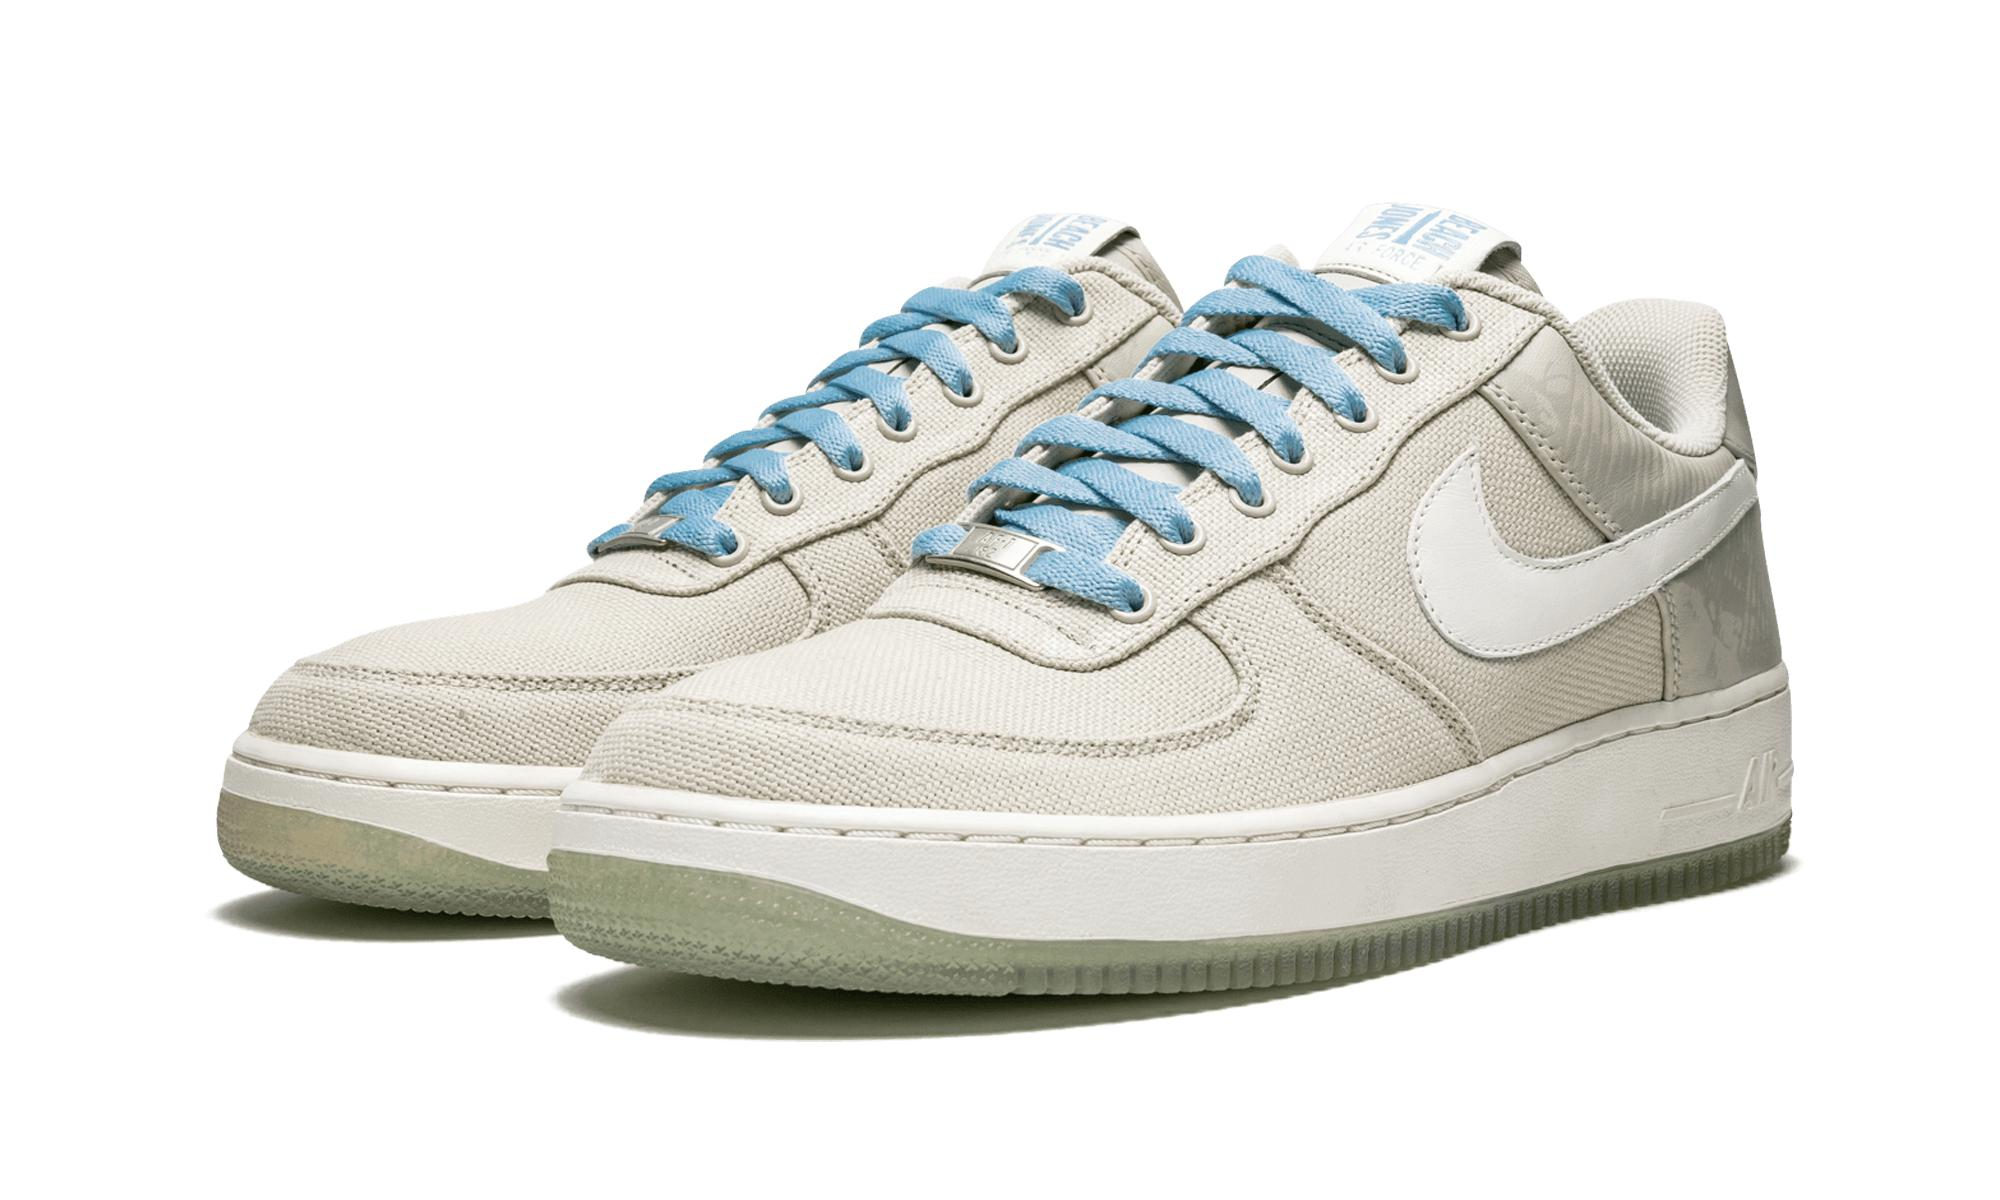 Nike - Multicolor Air Force 1 Premium Qs for Men - Lyst. View fullscreen a938cc0dc